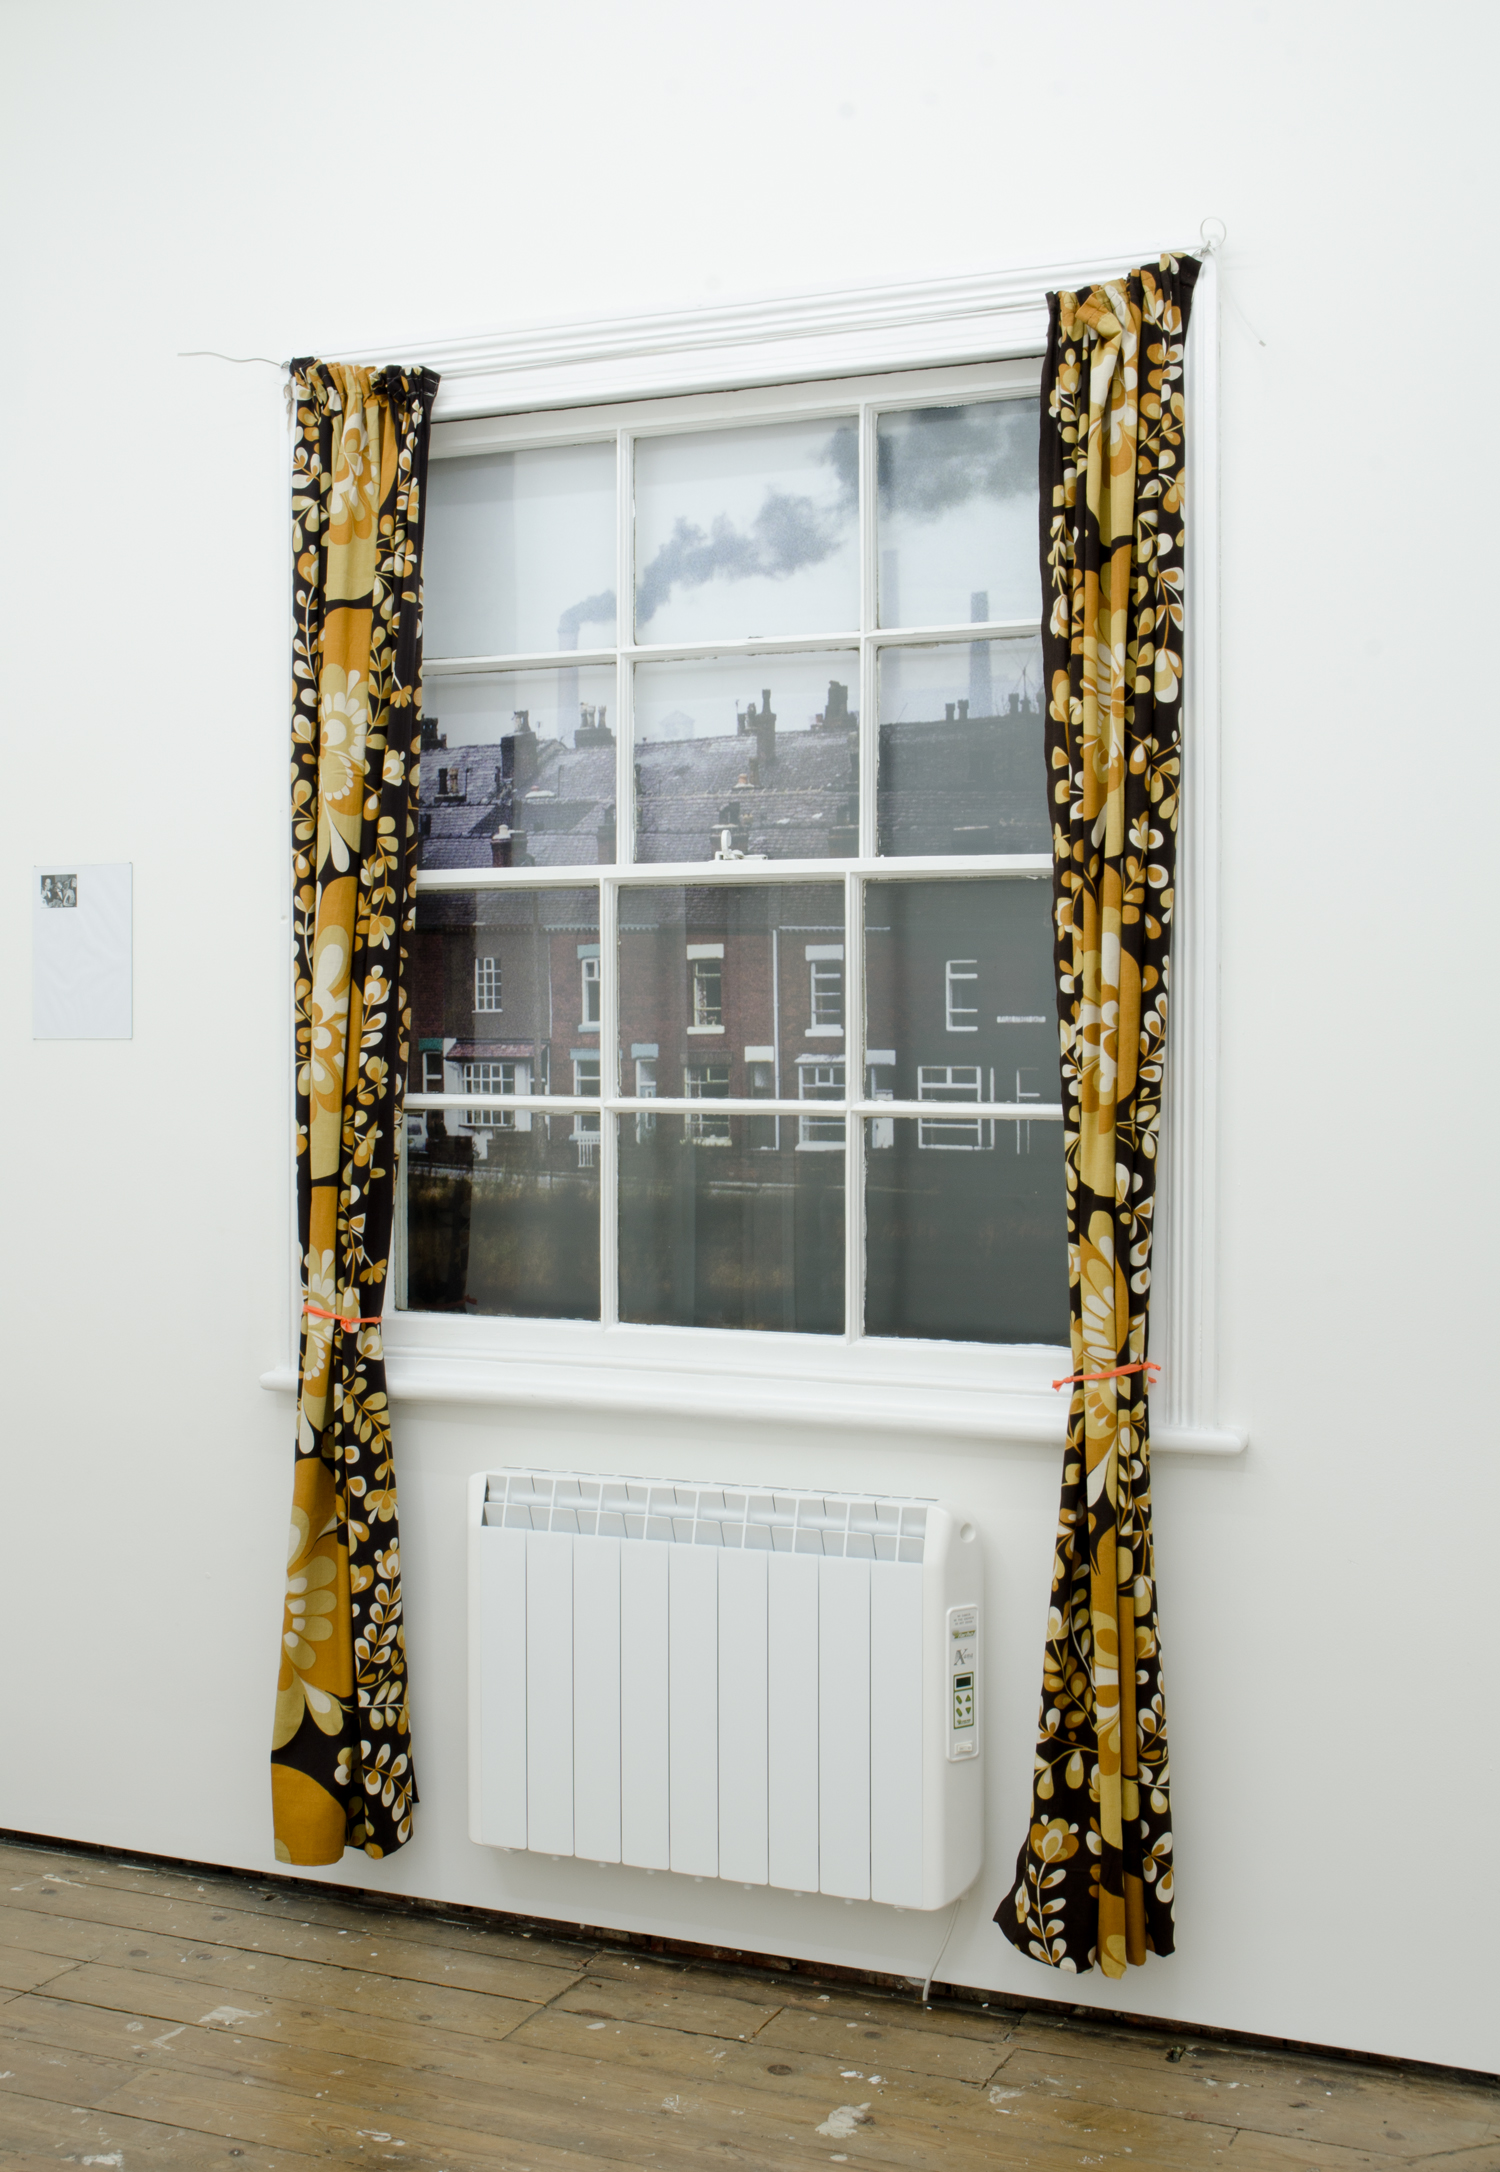 Andrew Munks  A window into 1976 (2) (Bulmer vision)  2016 Encapsulated inkjet print on wood panel, curtains, cable. Dimensions variable